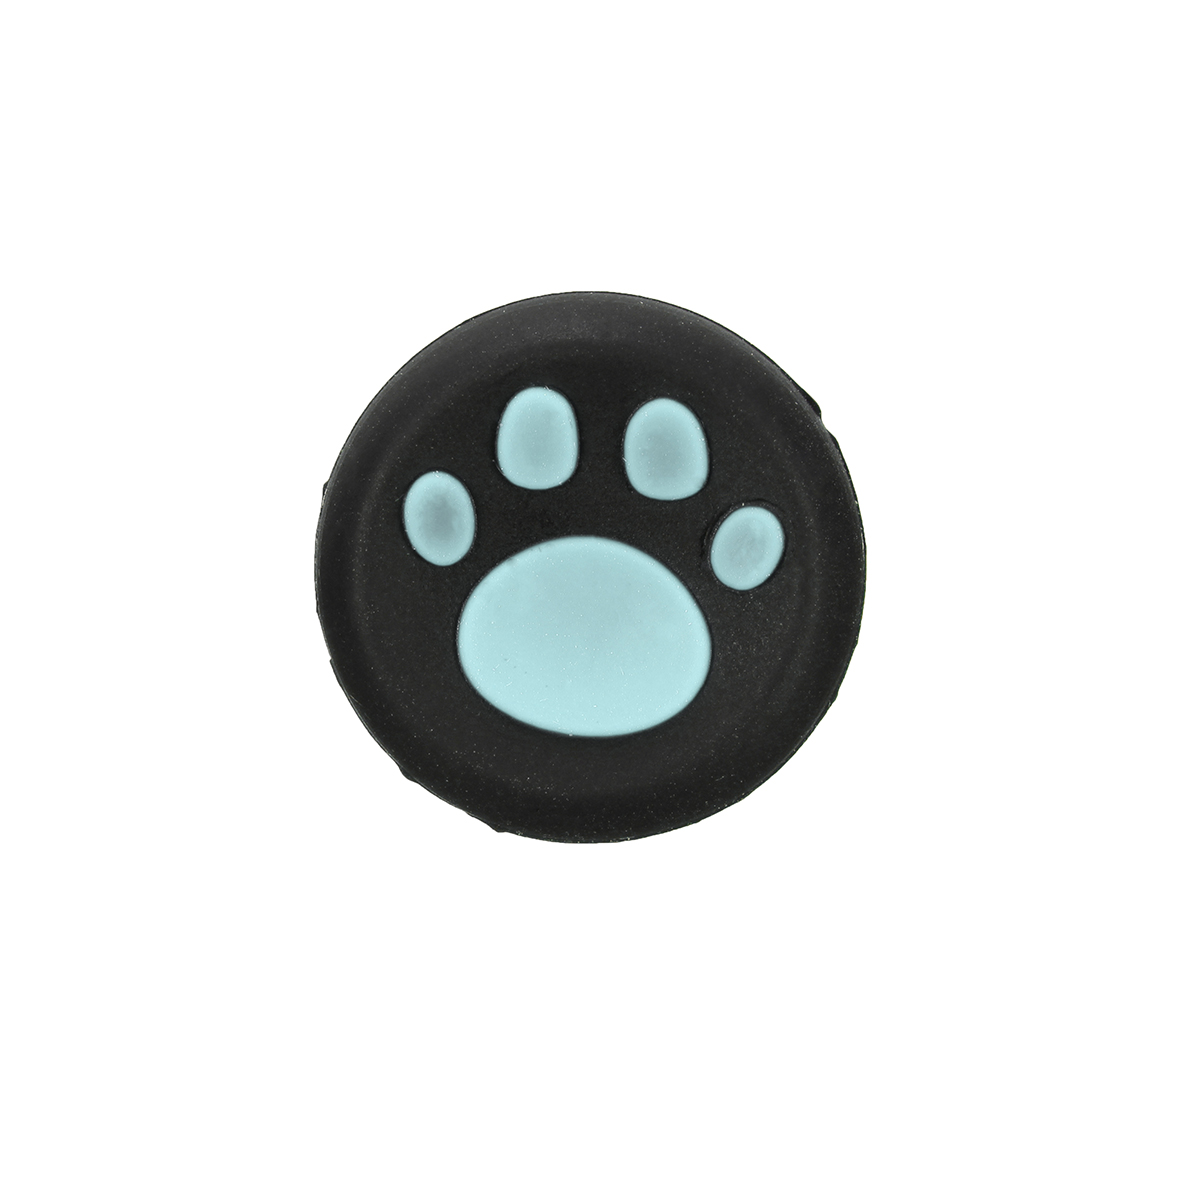 Rubber Silicone Thumbstick Joystick Cover Case Grips Caps Skin